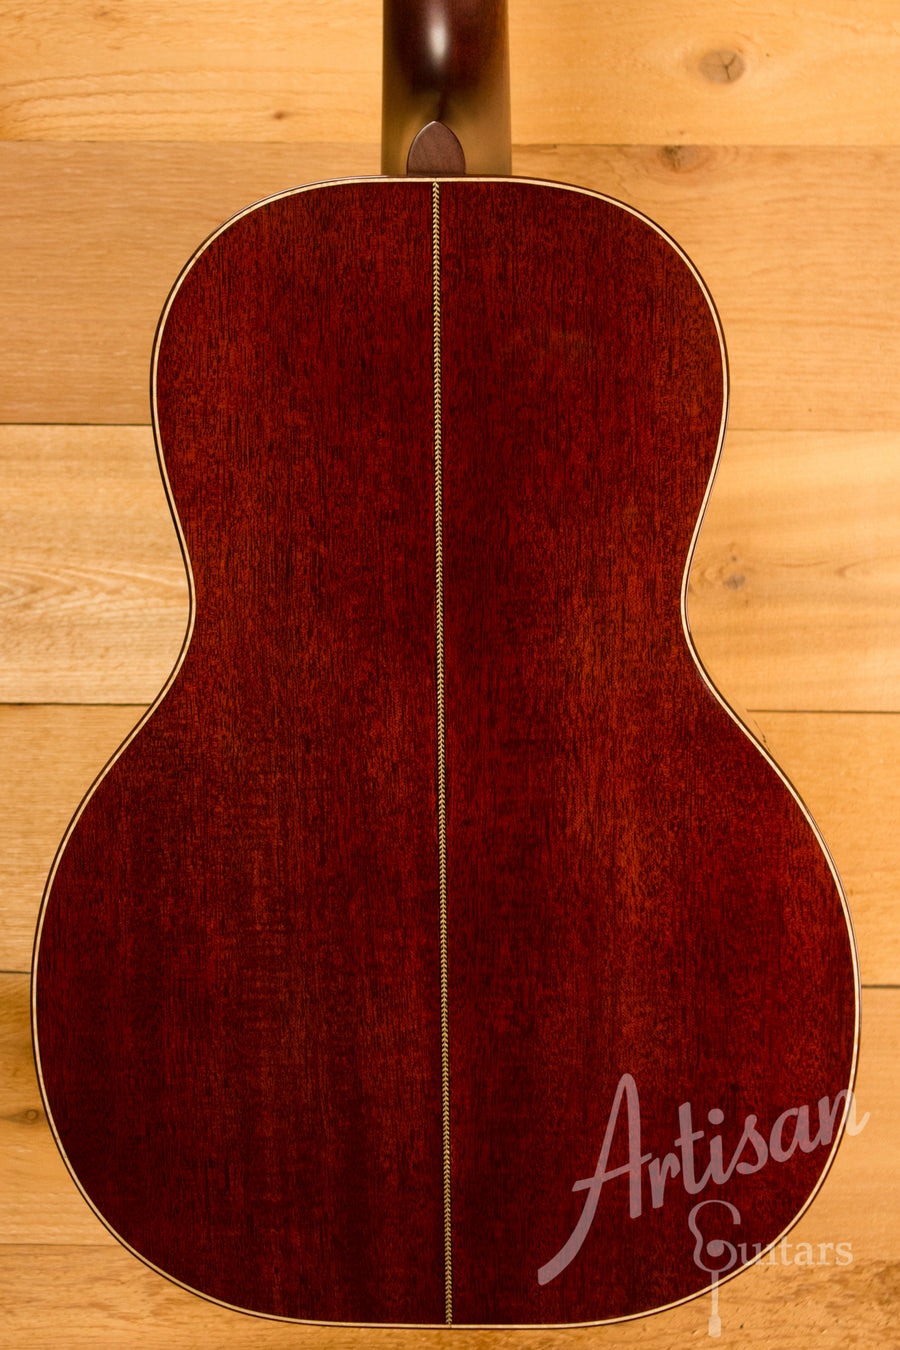 Huss and Dalton 0 SP Custom Mahogany Parlor Guitar Pre-Owned 2014 ID-10803 - Artisan Guitars